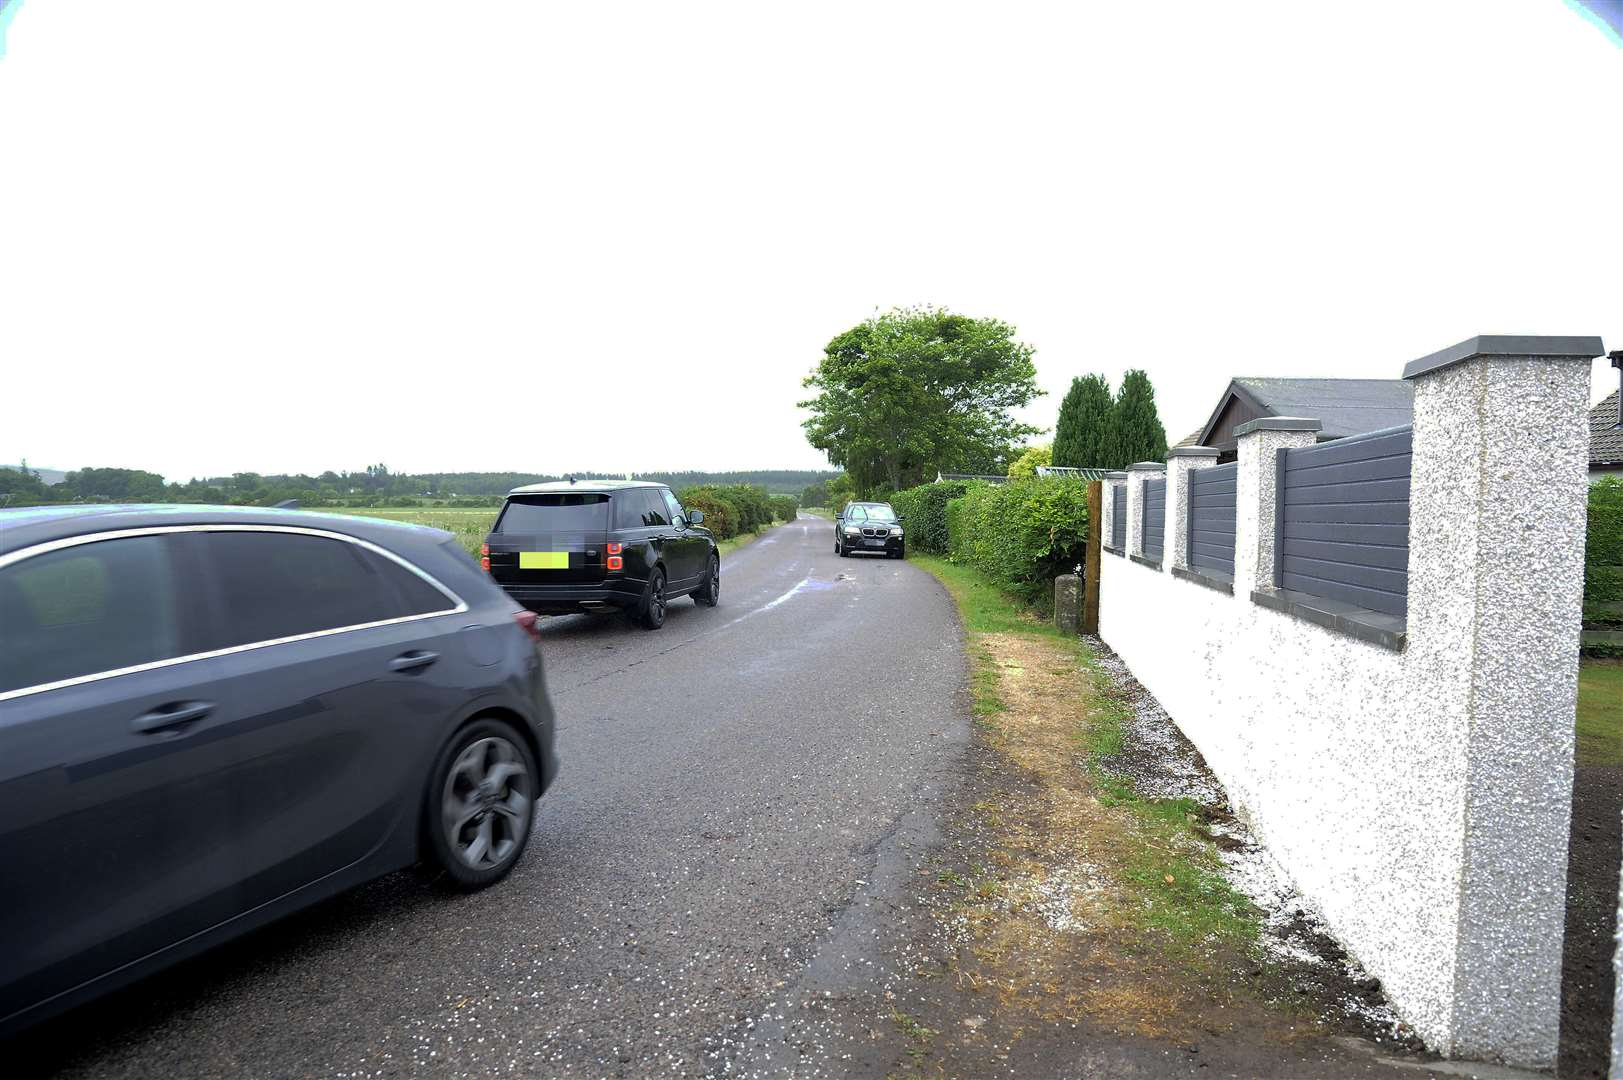 The road to Mundole near Redcraig becomes dangerous as traffic increases with developments in the town.